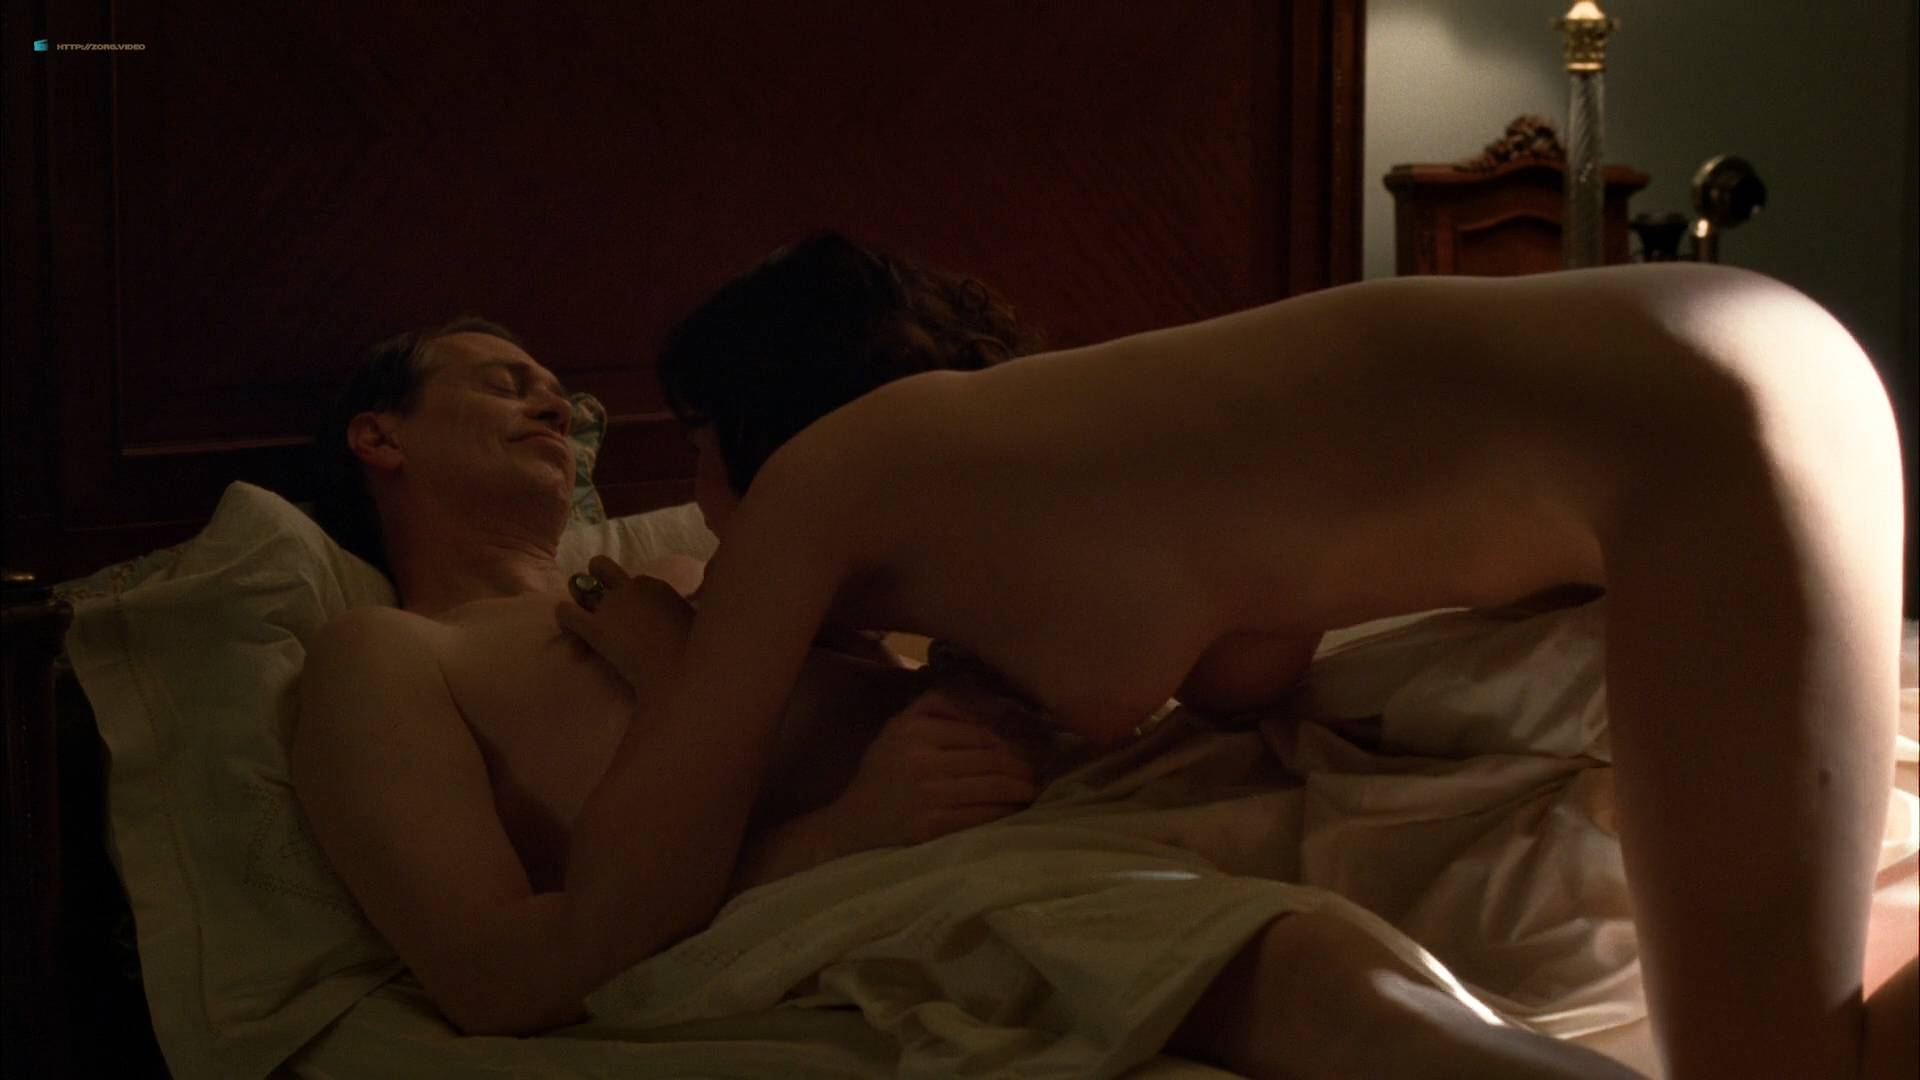 Boardwalk empire bondage scene